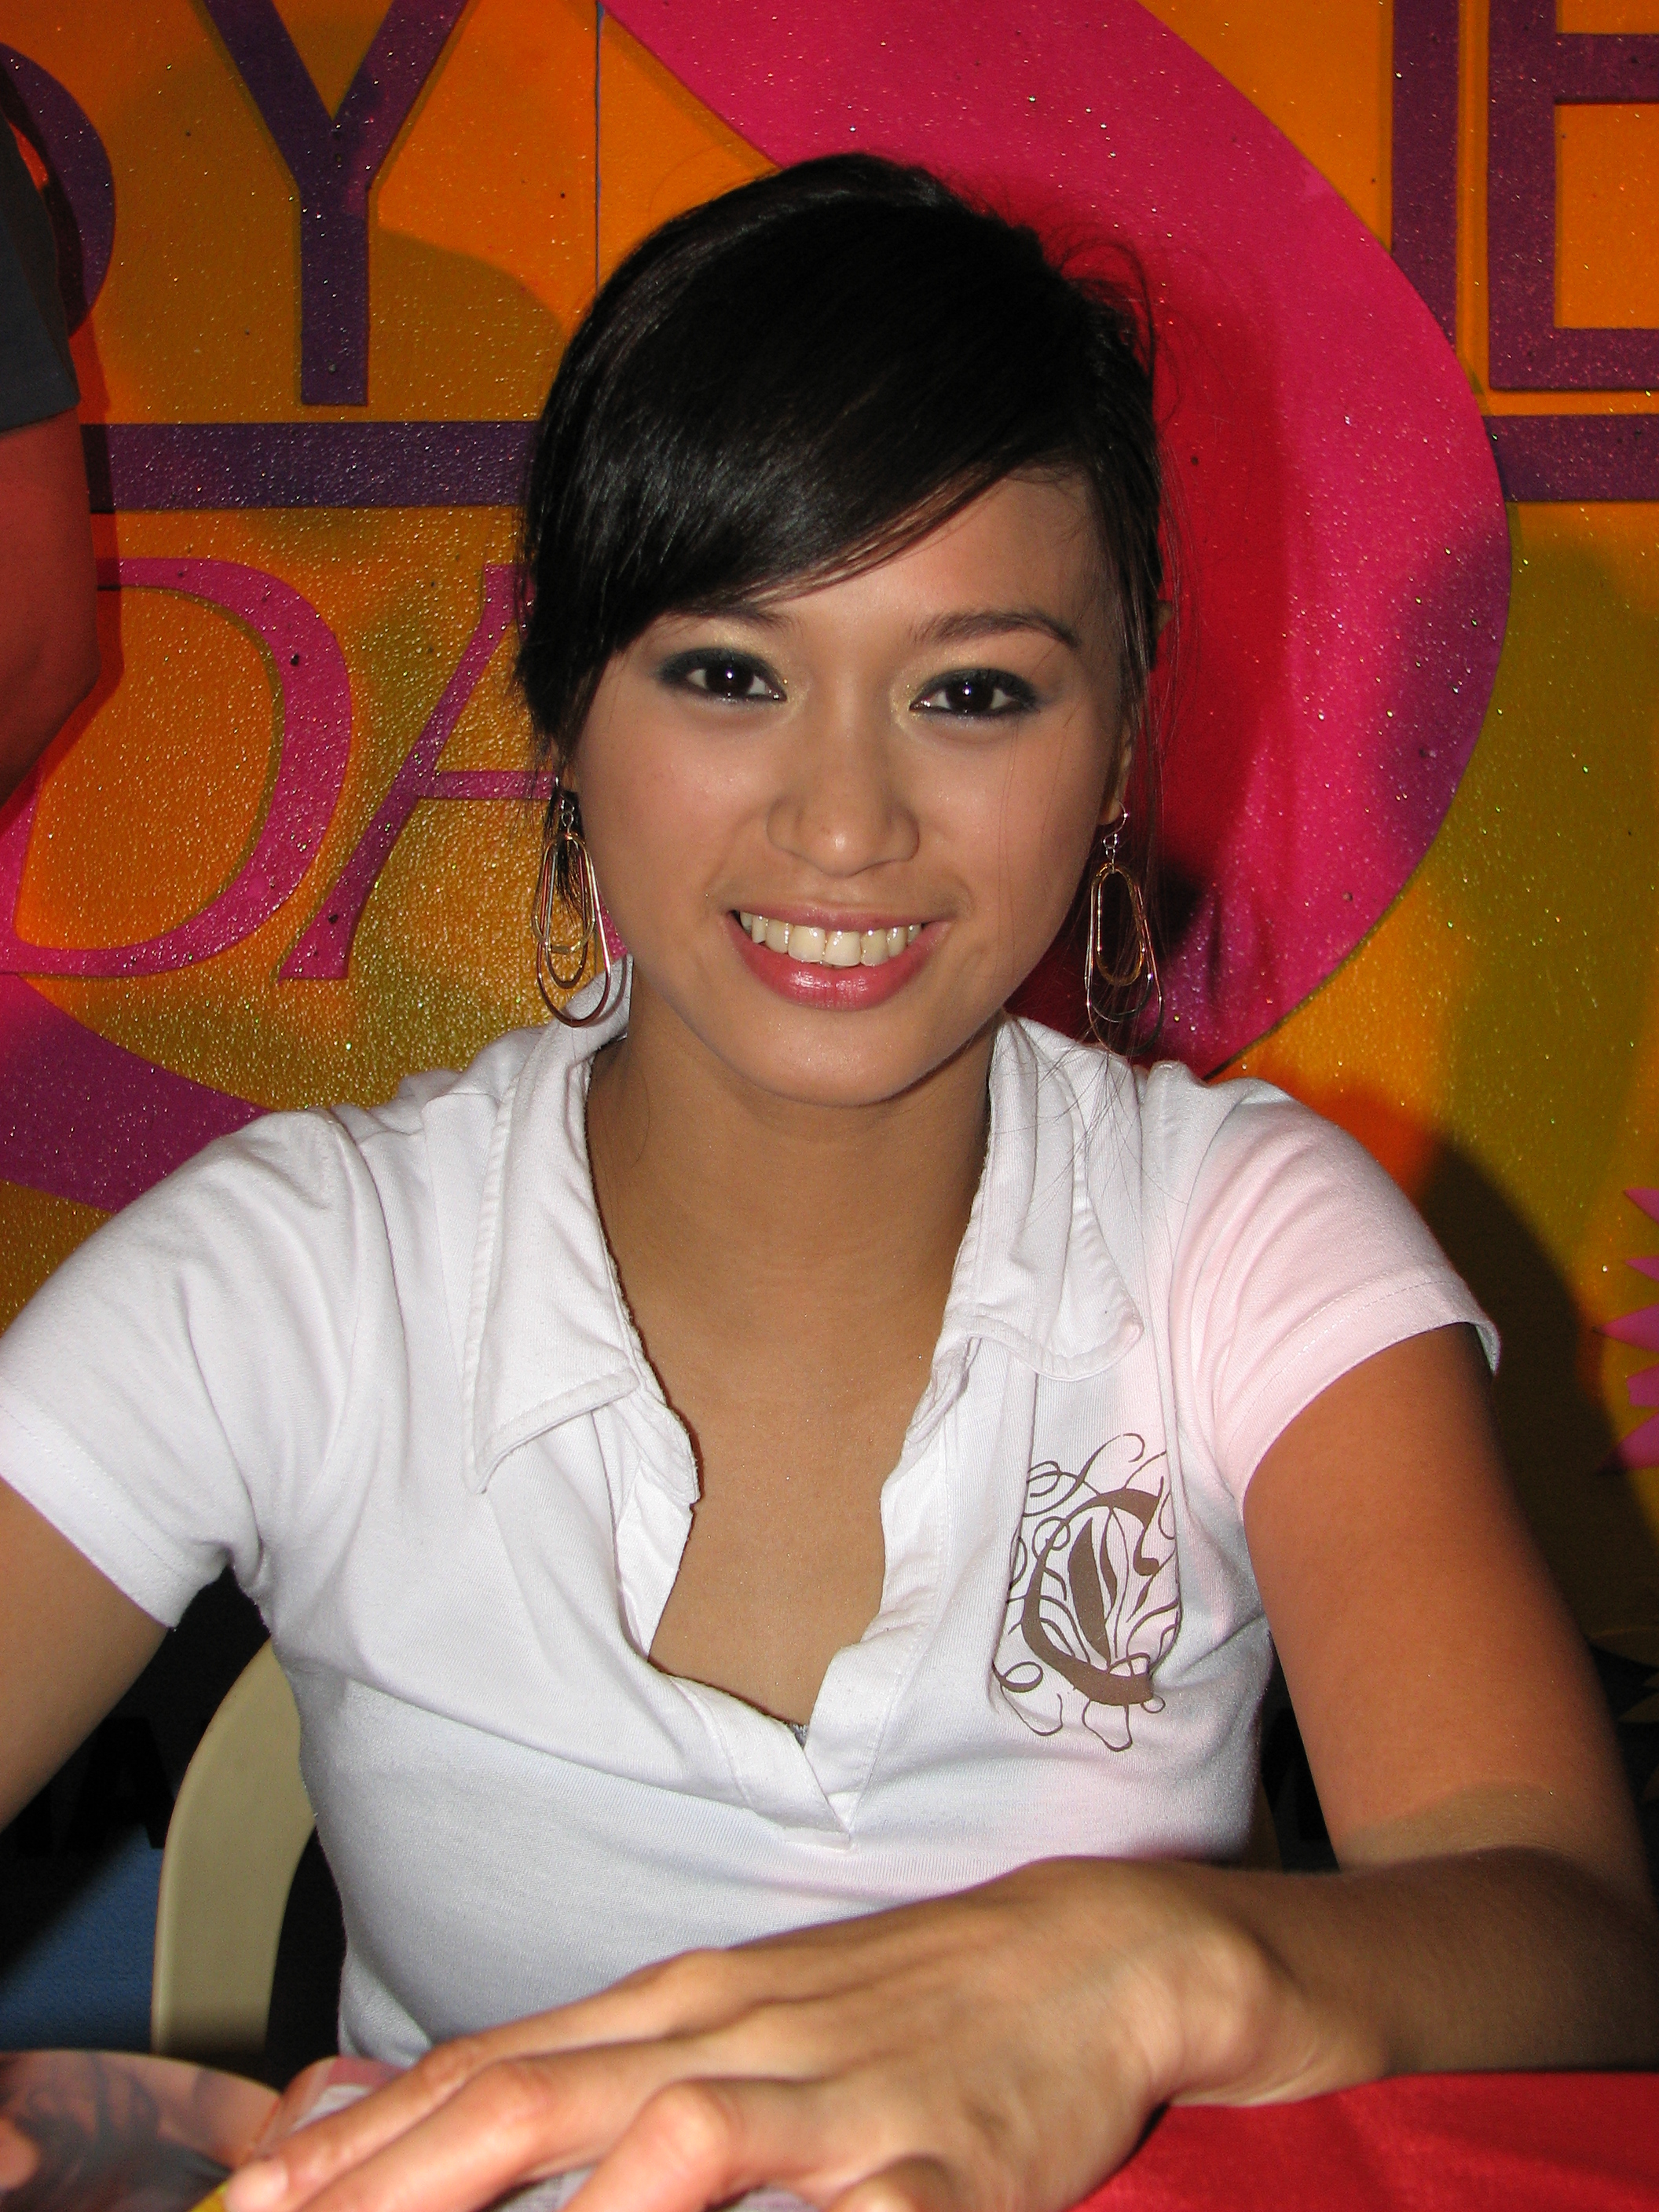 pictures Rochelle Pangilinan (b. 1982)